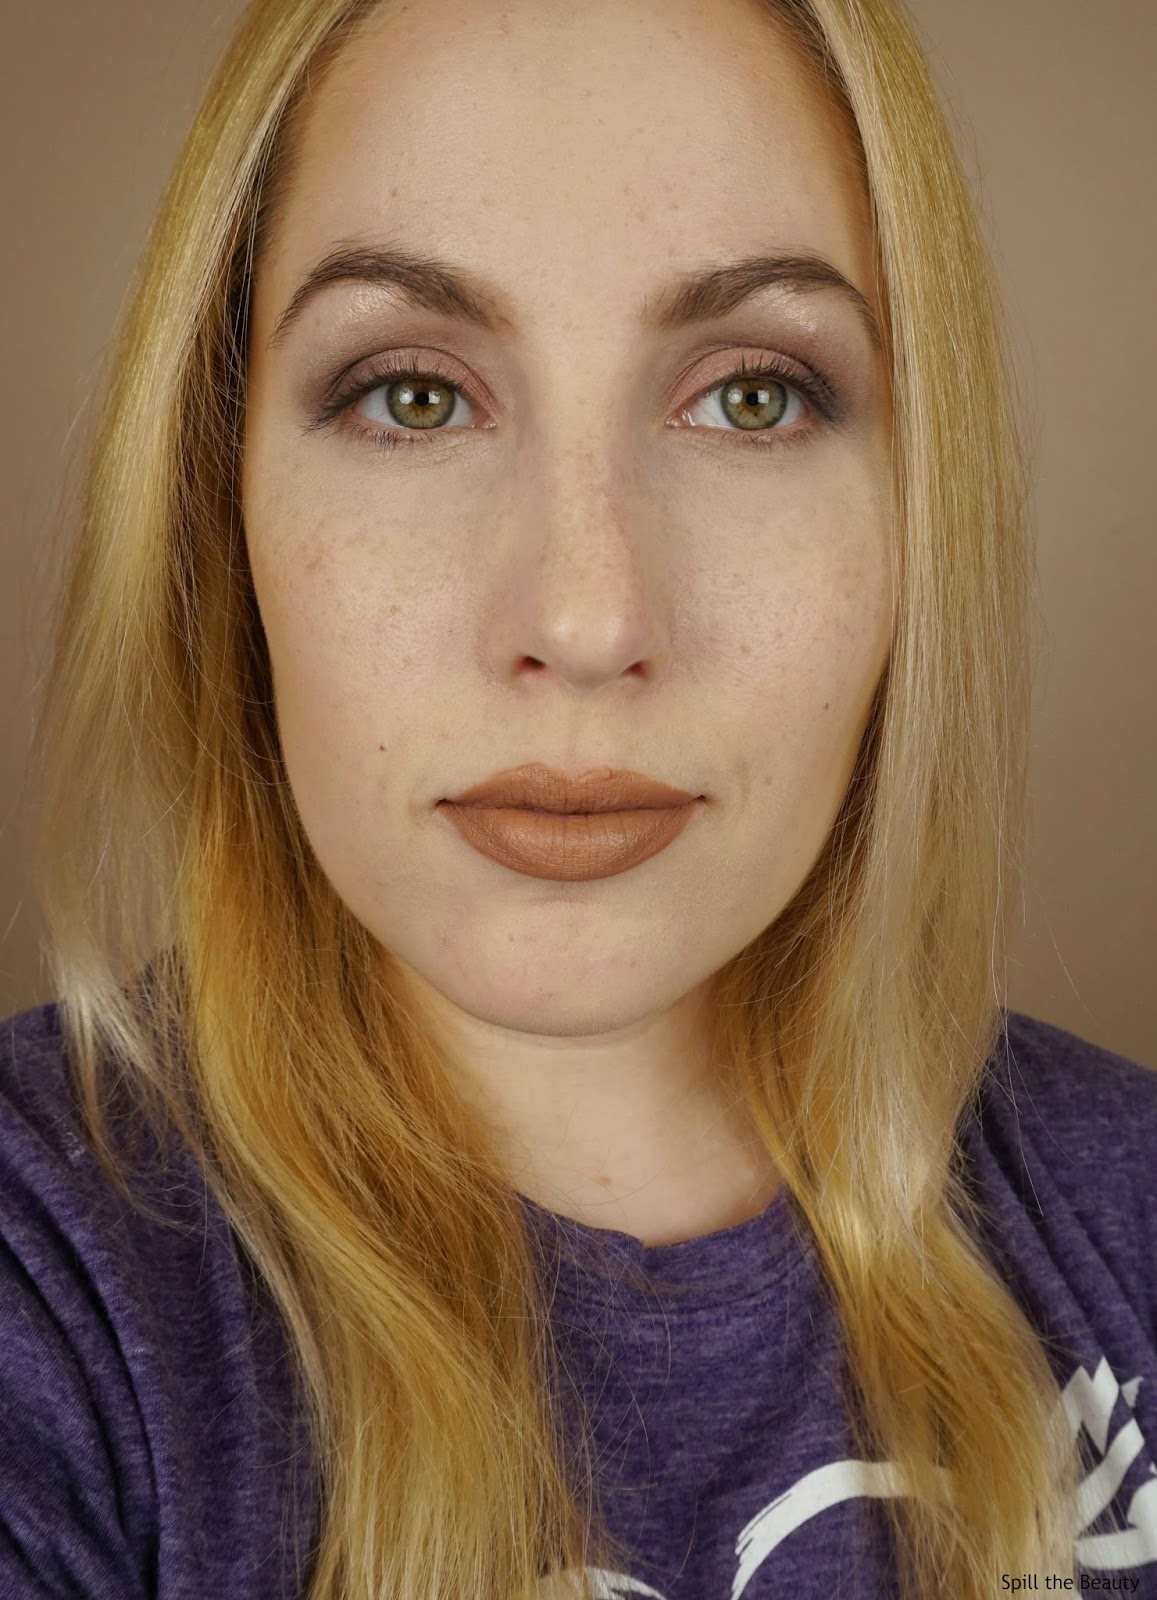 dior 5 couleurs skyline eyeshadow palette capital of light review swatches face